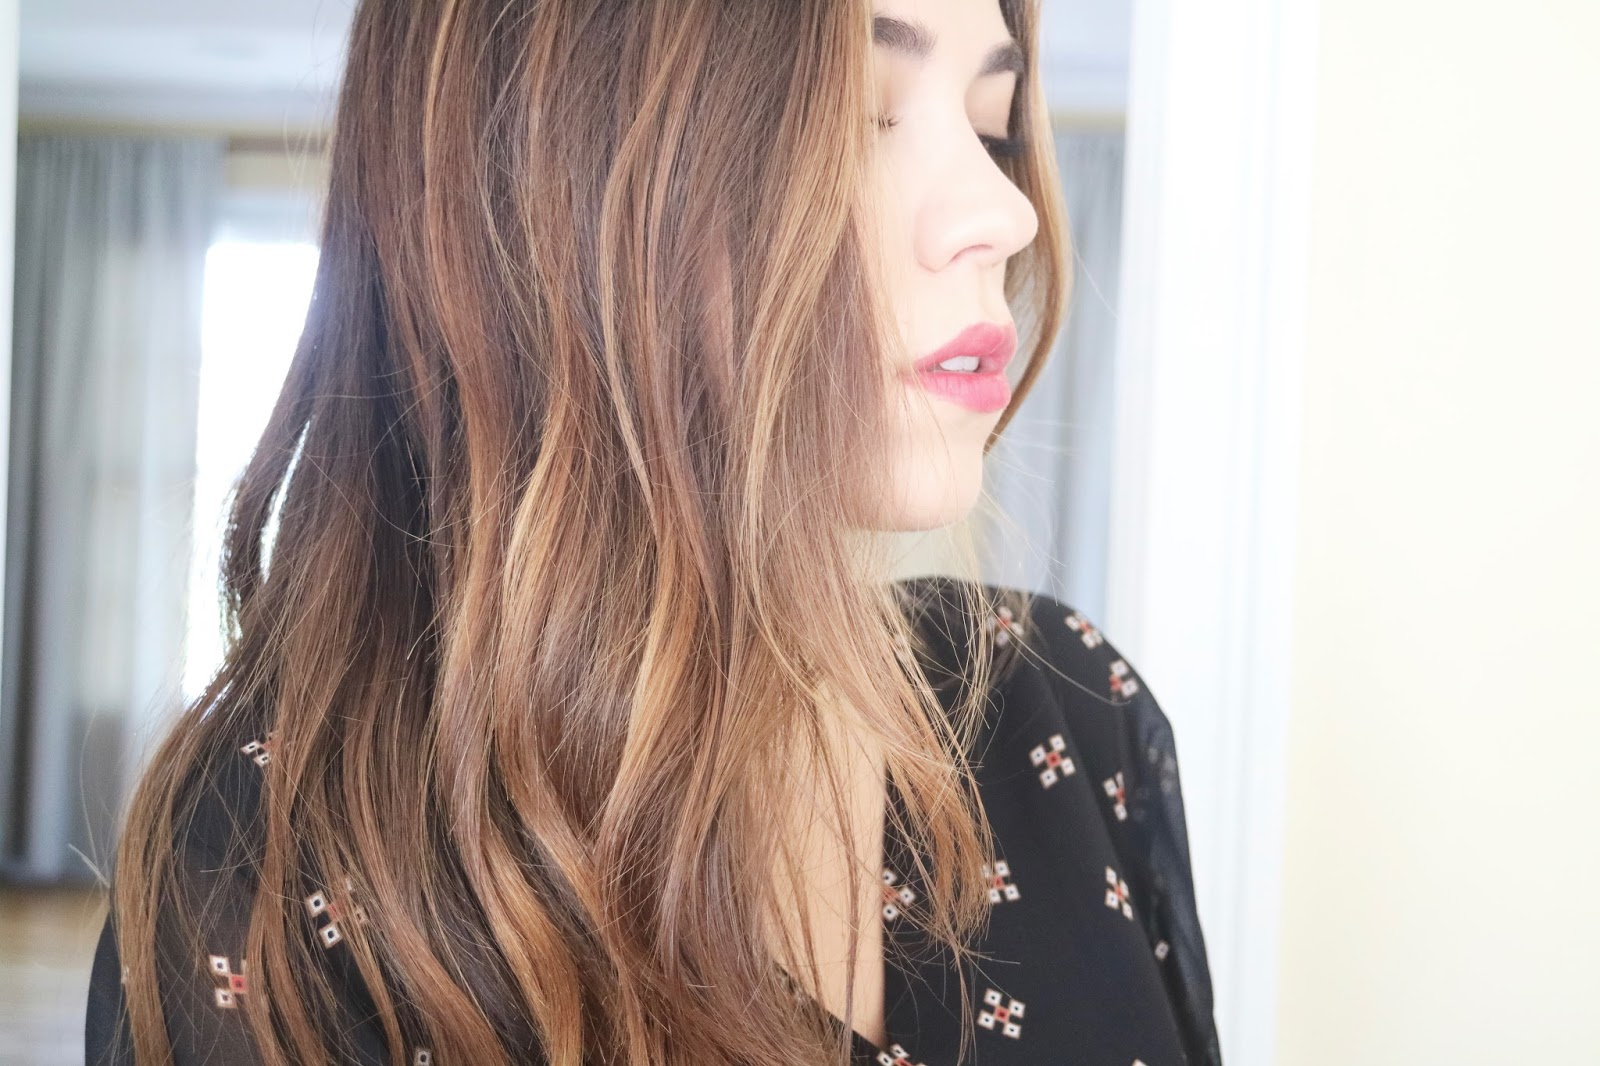 MY FIRST BALAYAGE EXPERIENCE & PRODUCT CHANGEUP